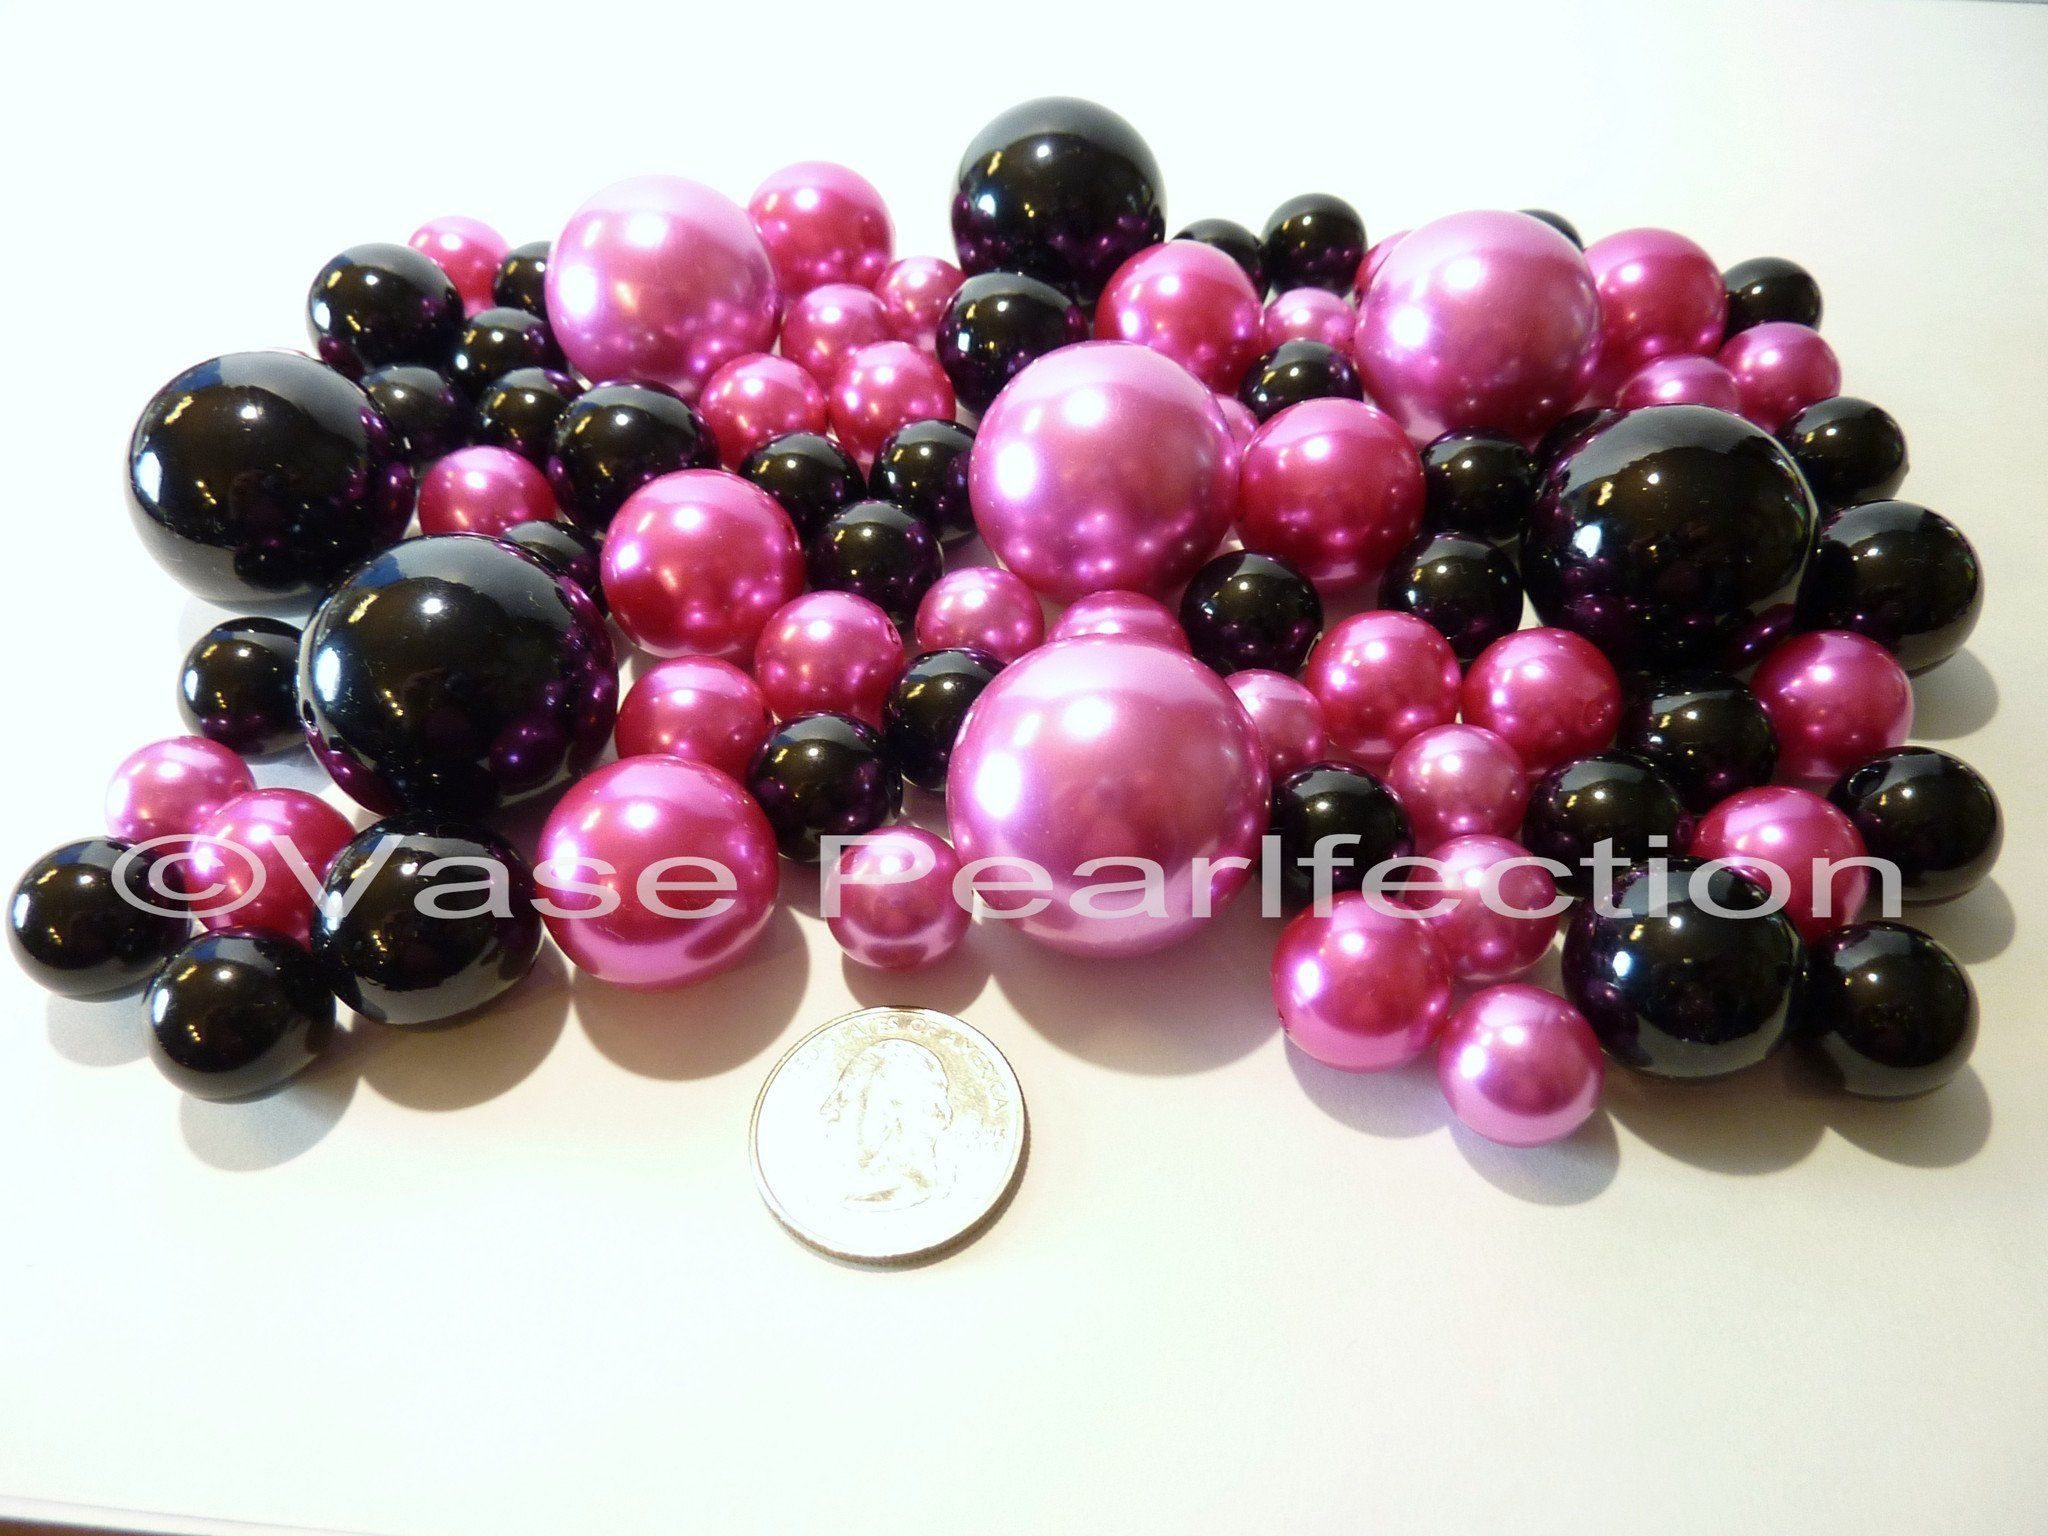 pearl vase fillers of all red pearls jumbo assorted sizes vase fillers for dec for valentine hot pink black pearls jumbo assorted sizes vase fillers for decorating centerpieces